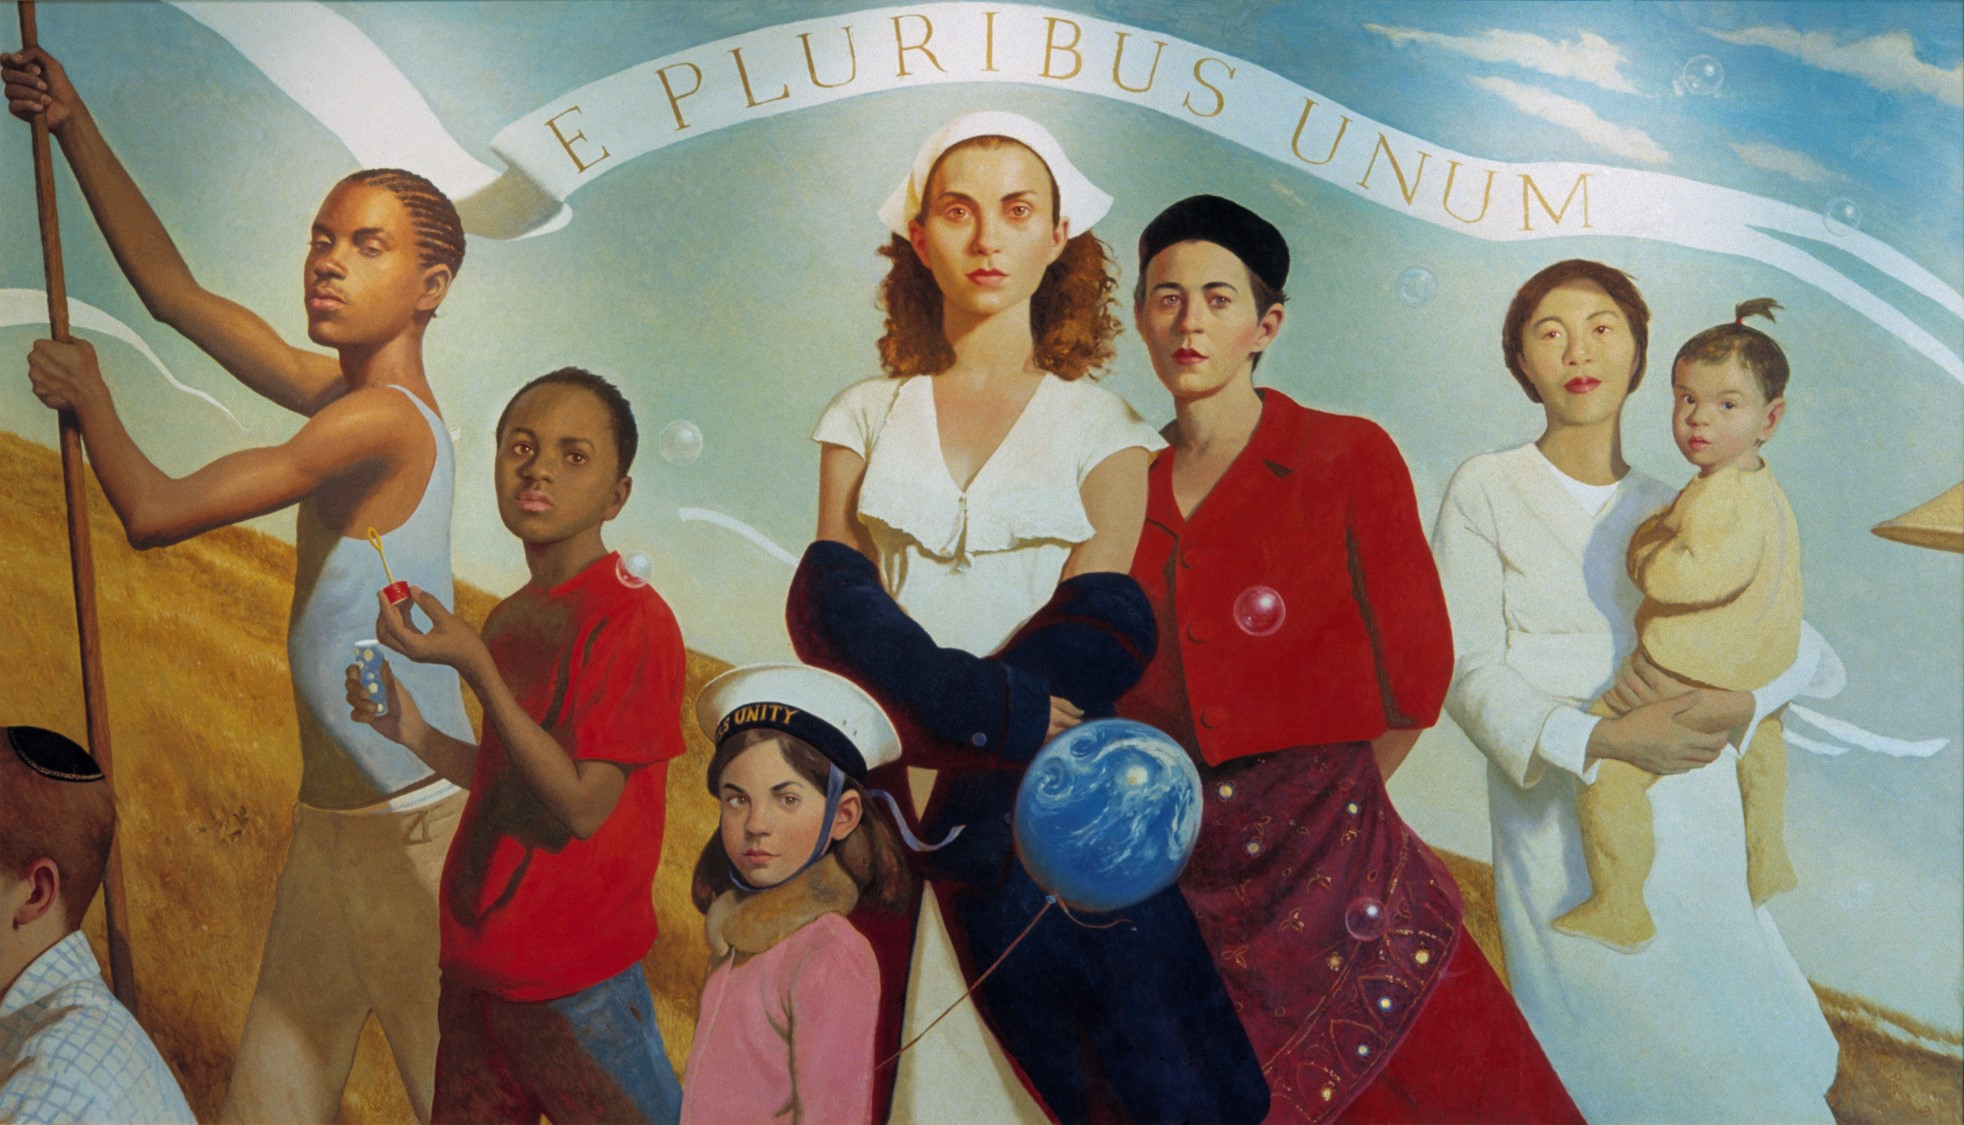 E Pluribus Unum (Out of Many, One), 2003